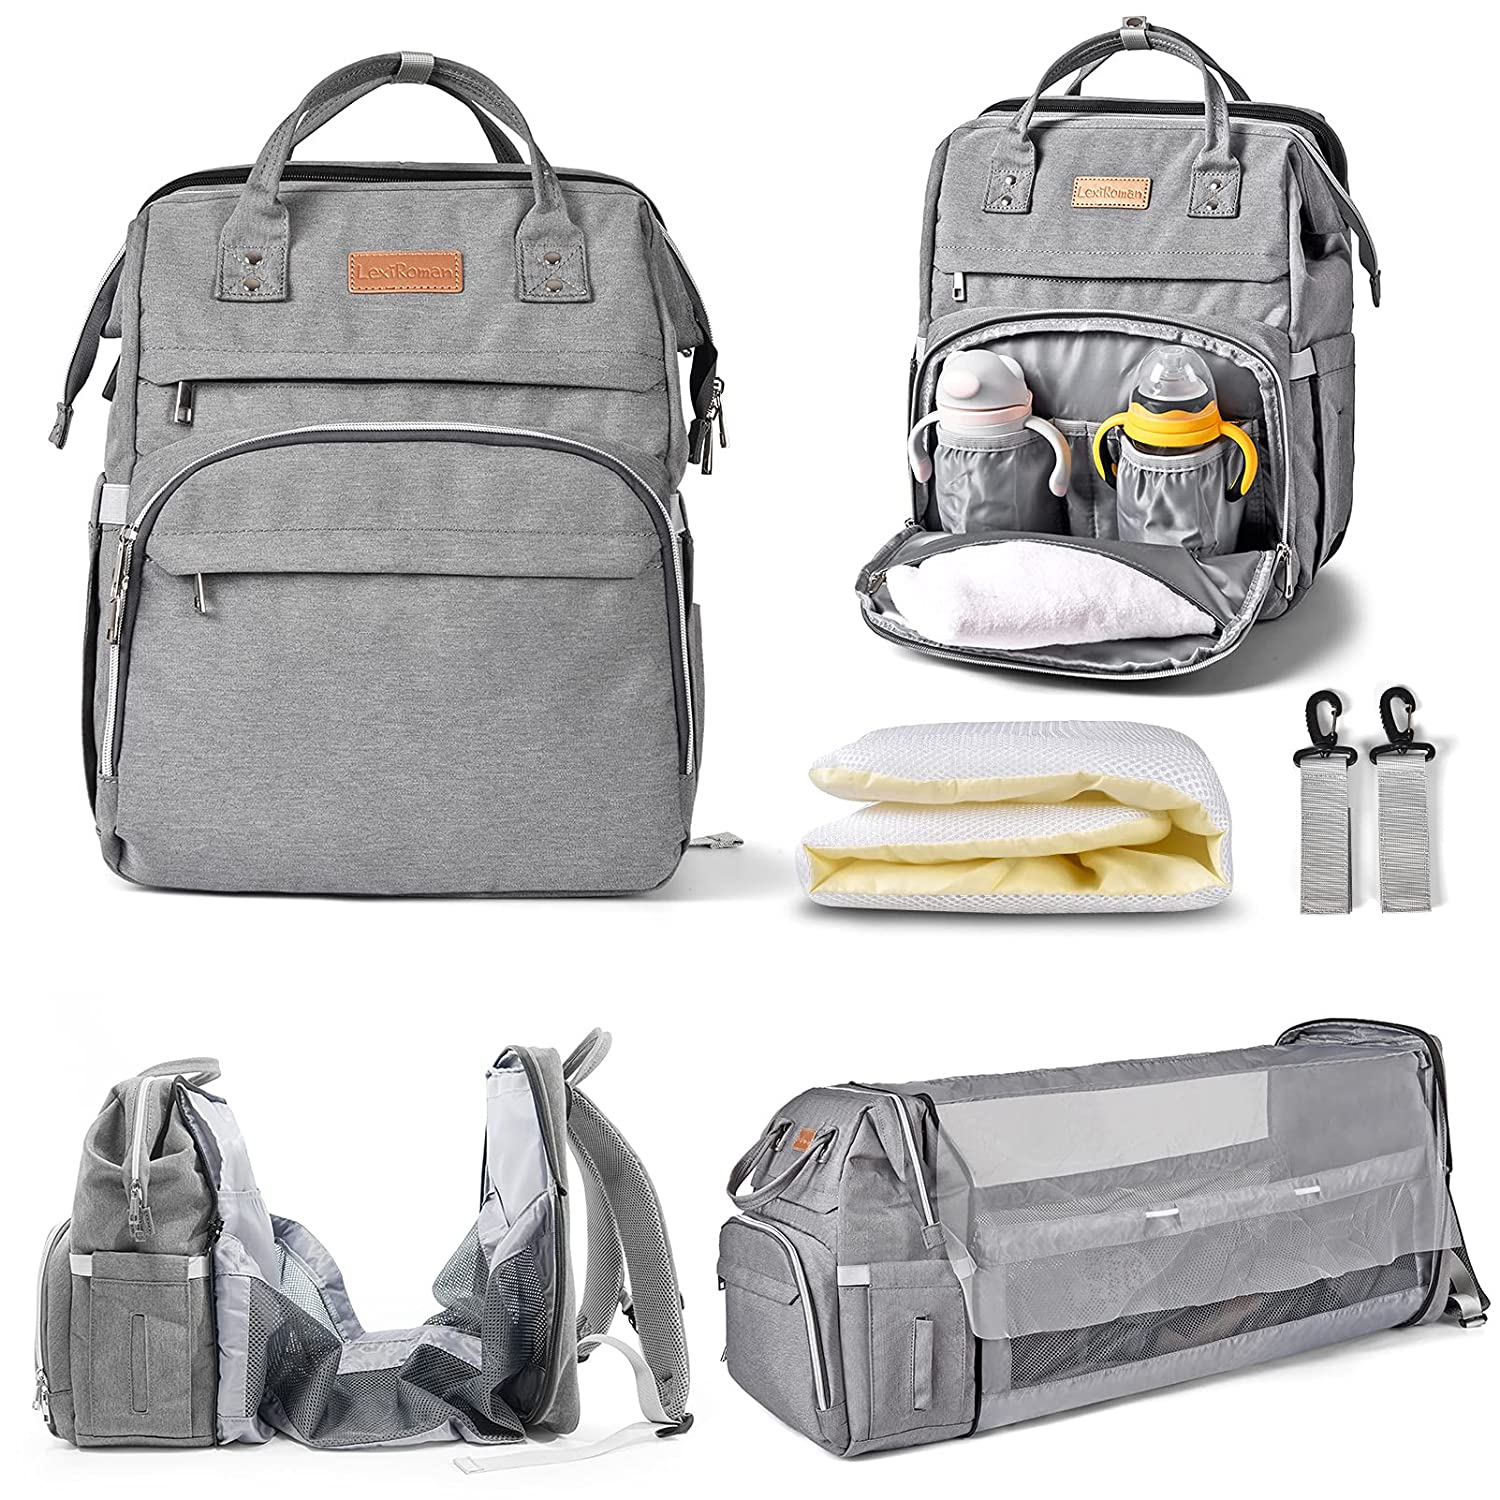 Diaper Bag Backpack Multi-Function Waterproof Travel Backpack Nappy Bags for Baby Care,Diaper Bag with Foldable Baby Bed and USB Large Capacity, Stylish and Durable-Light Gray